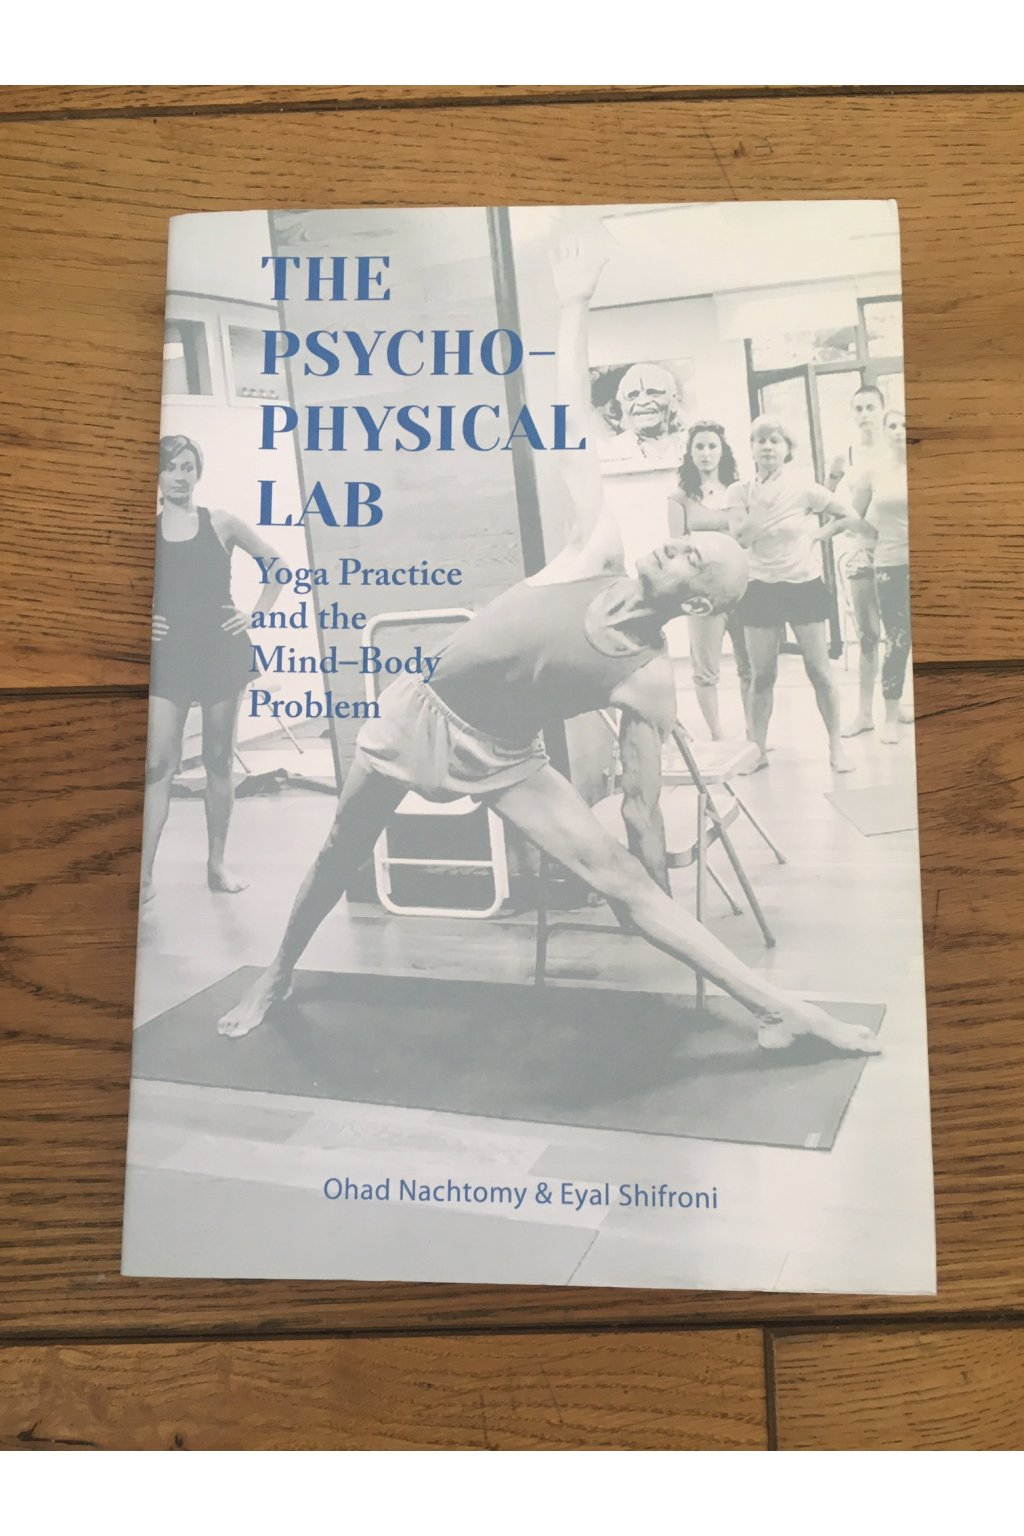 the-psycho-physical-lab